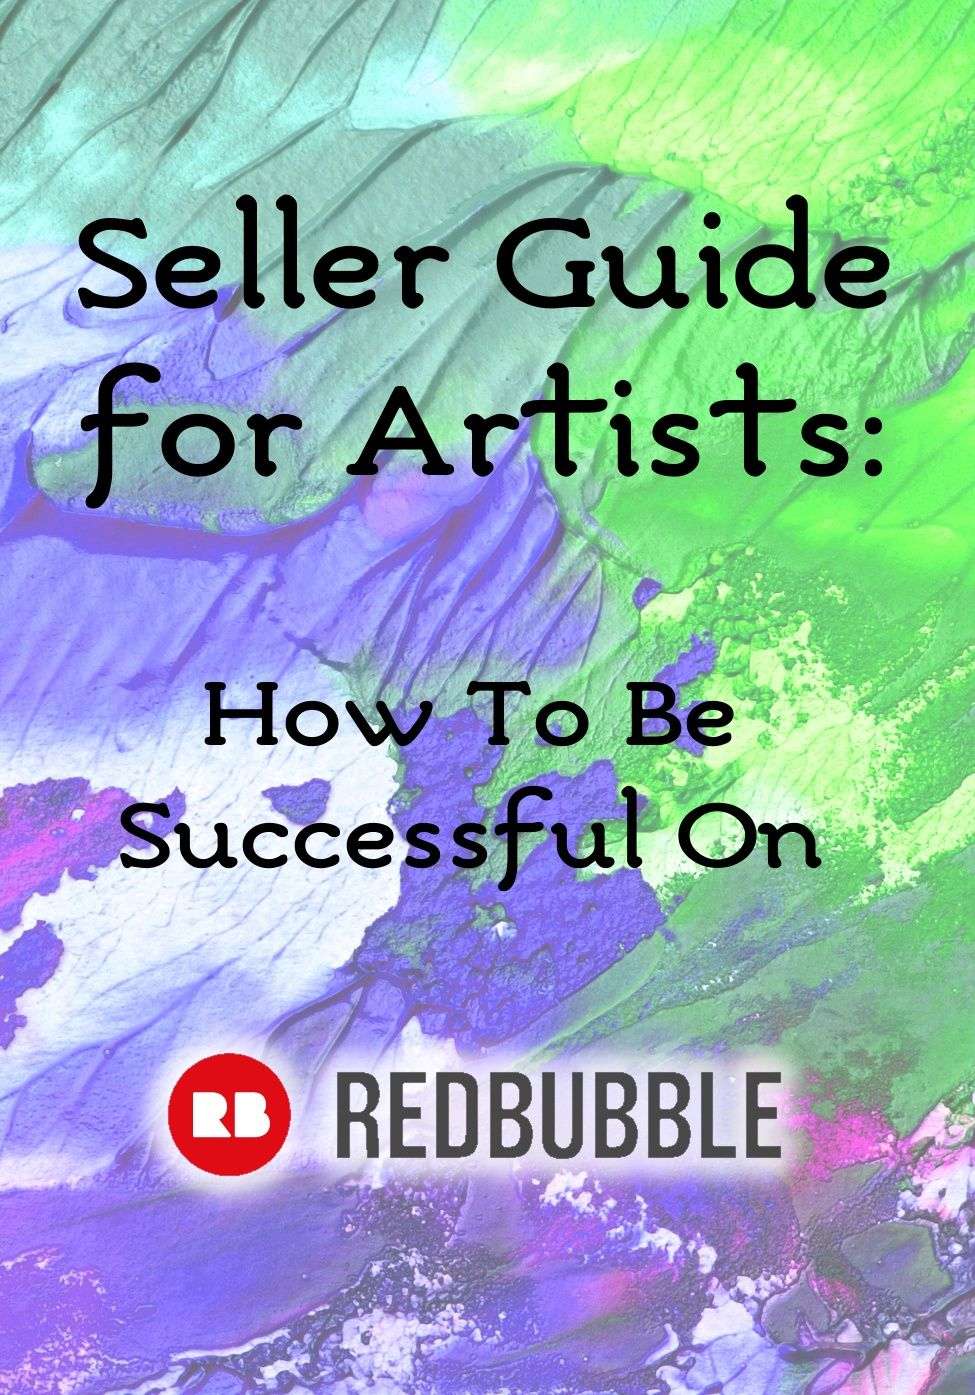 Seller Guide For Artists How To Be Successful On Redbubble Selling Art Online Redbubble Print On Demand